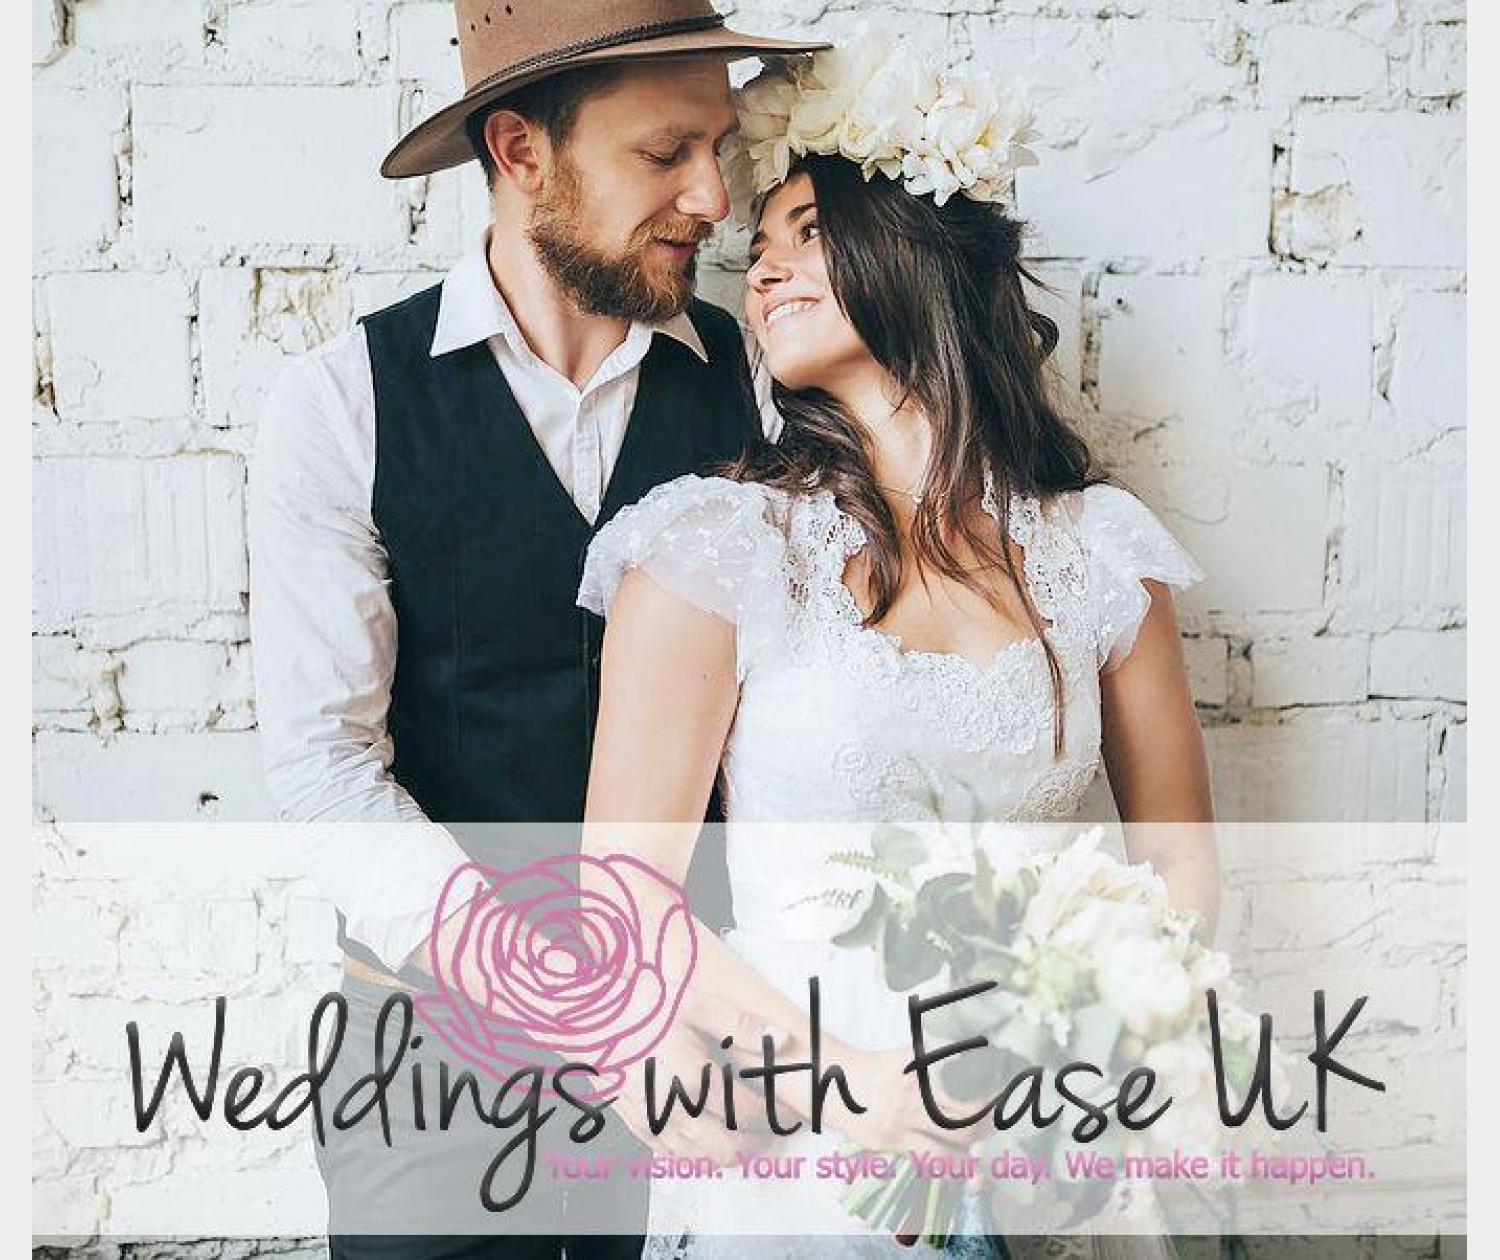 Weddings with Ease UK